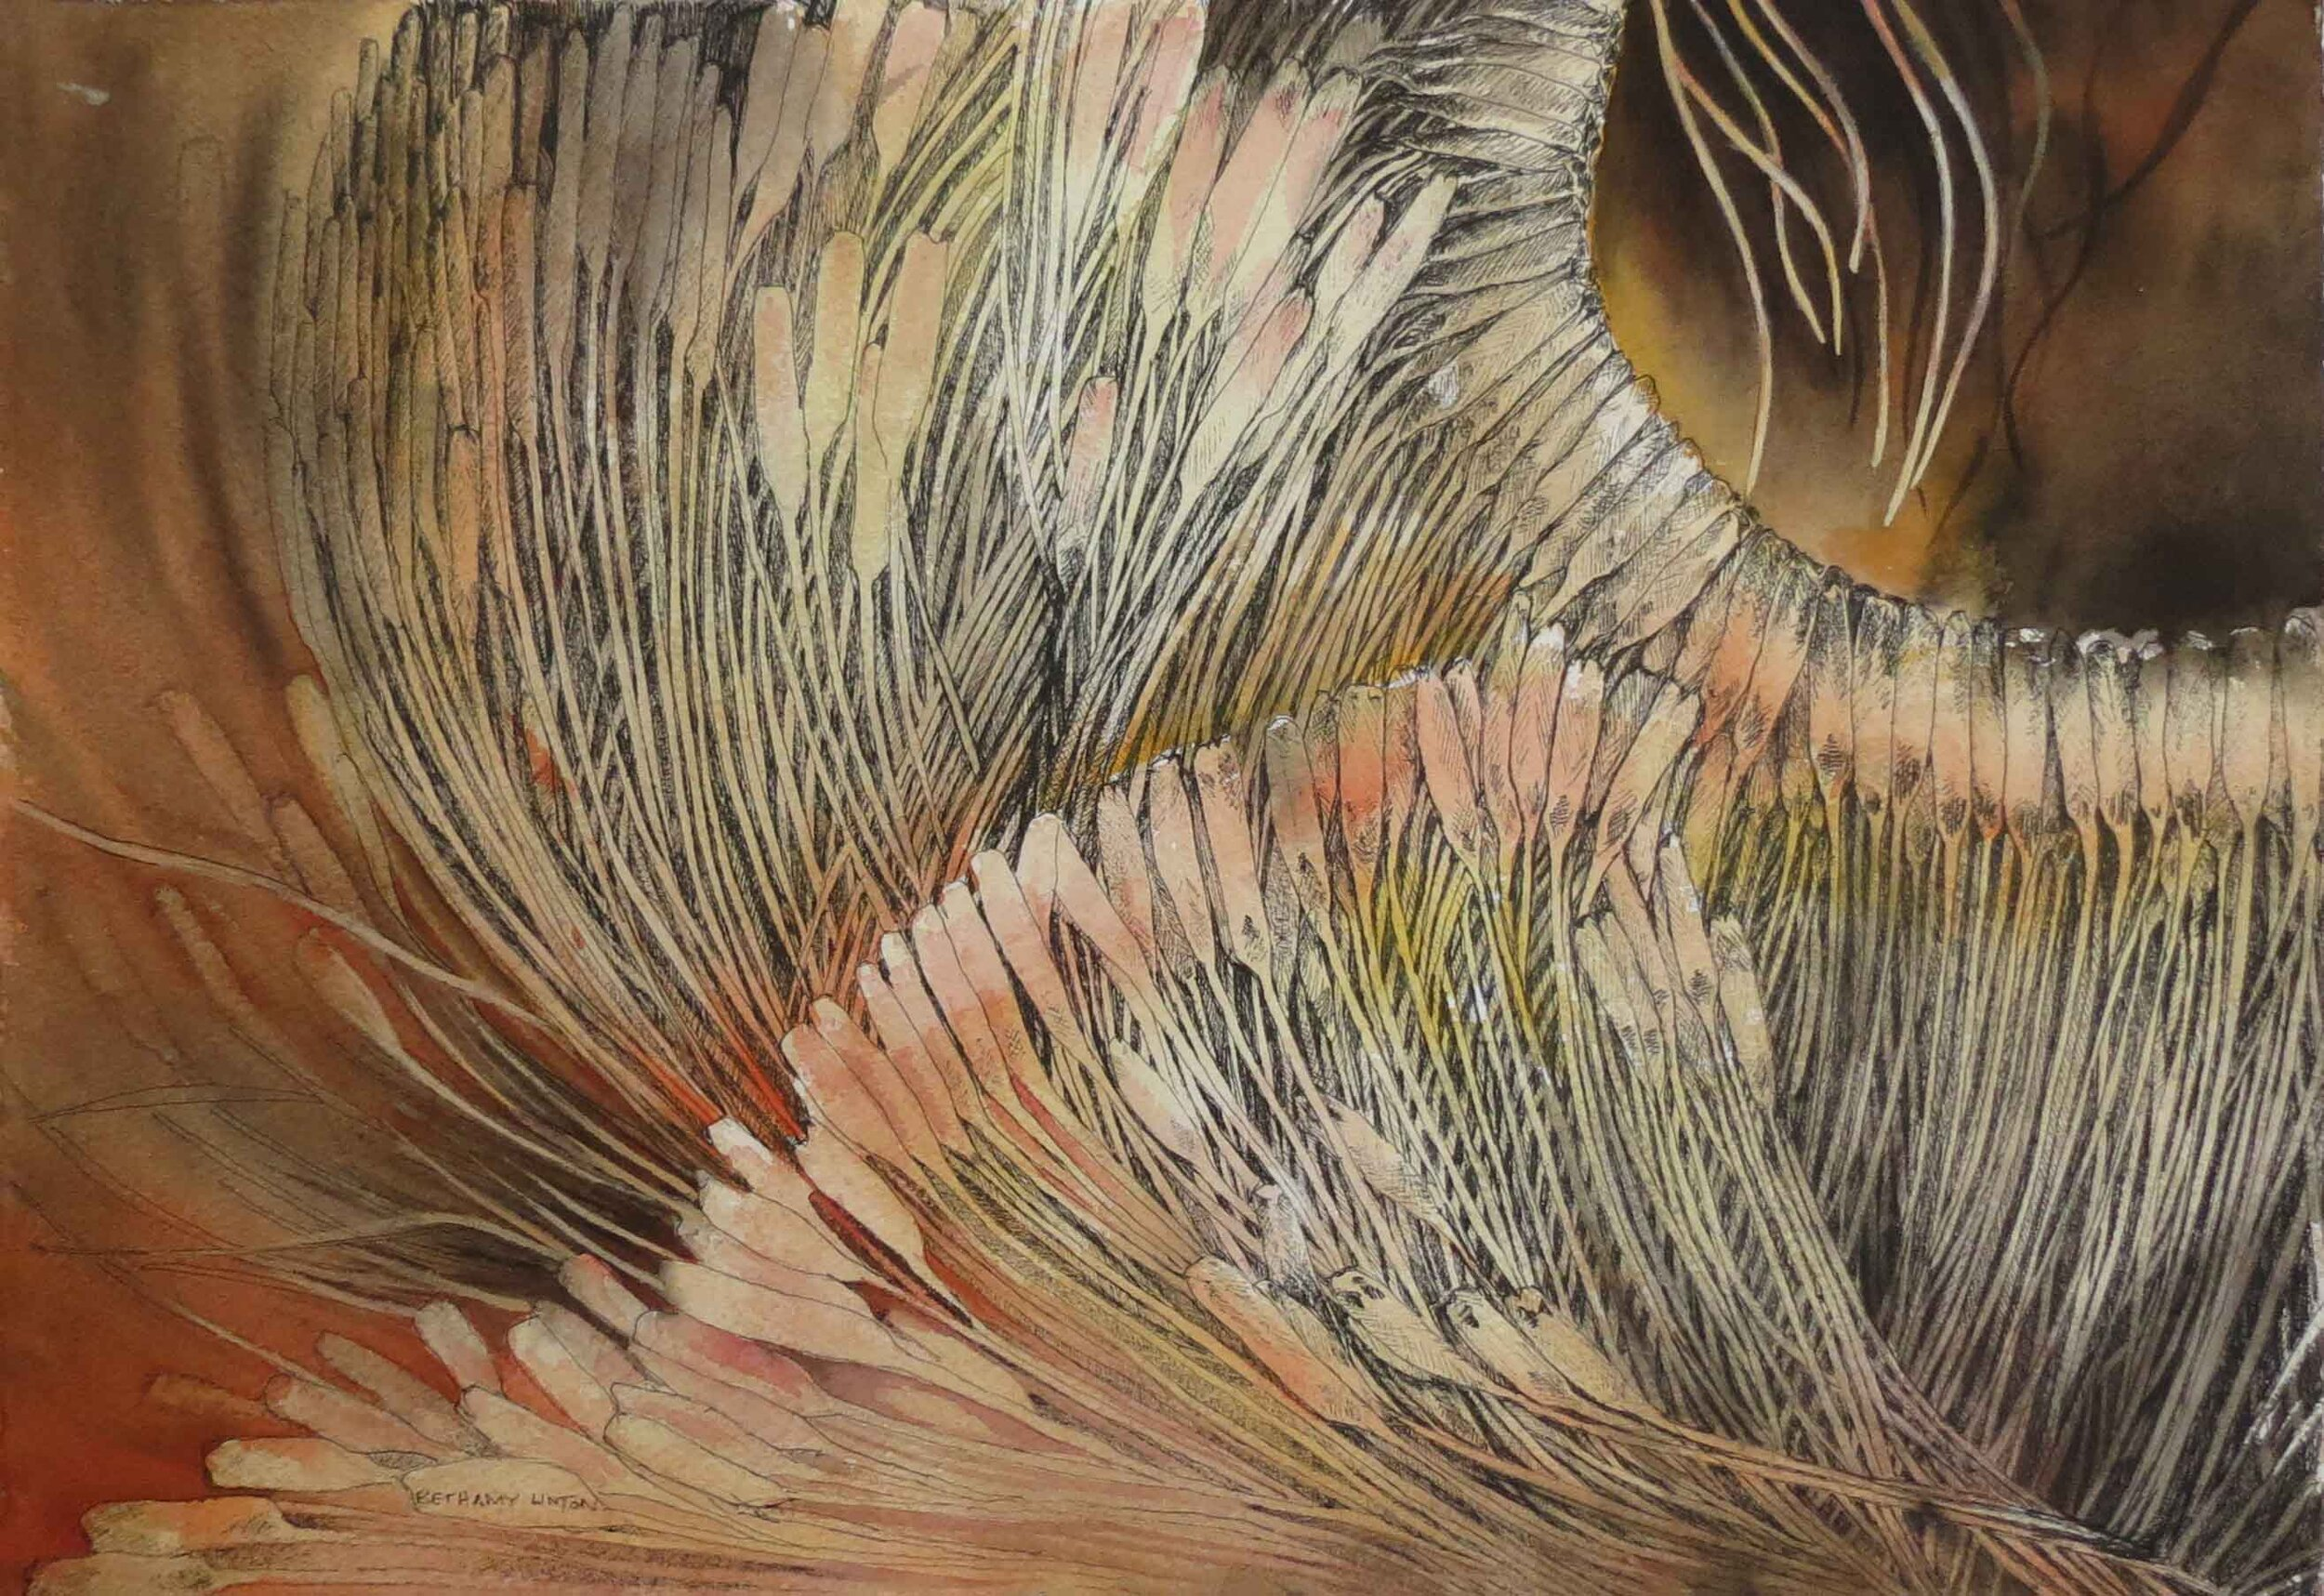 57. Bethamy Linton, Xanthorrhoea, 2019, ink and watercolour wash on watercolour paper, 30 x 42 cm $350